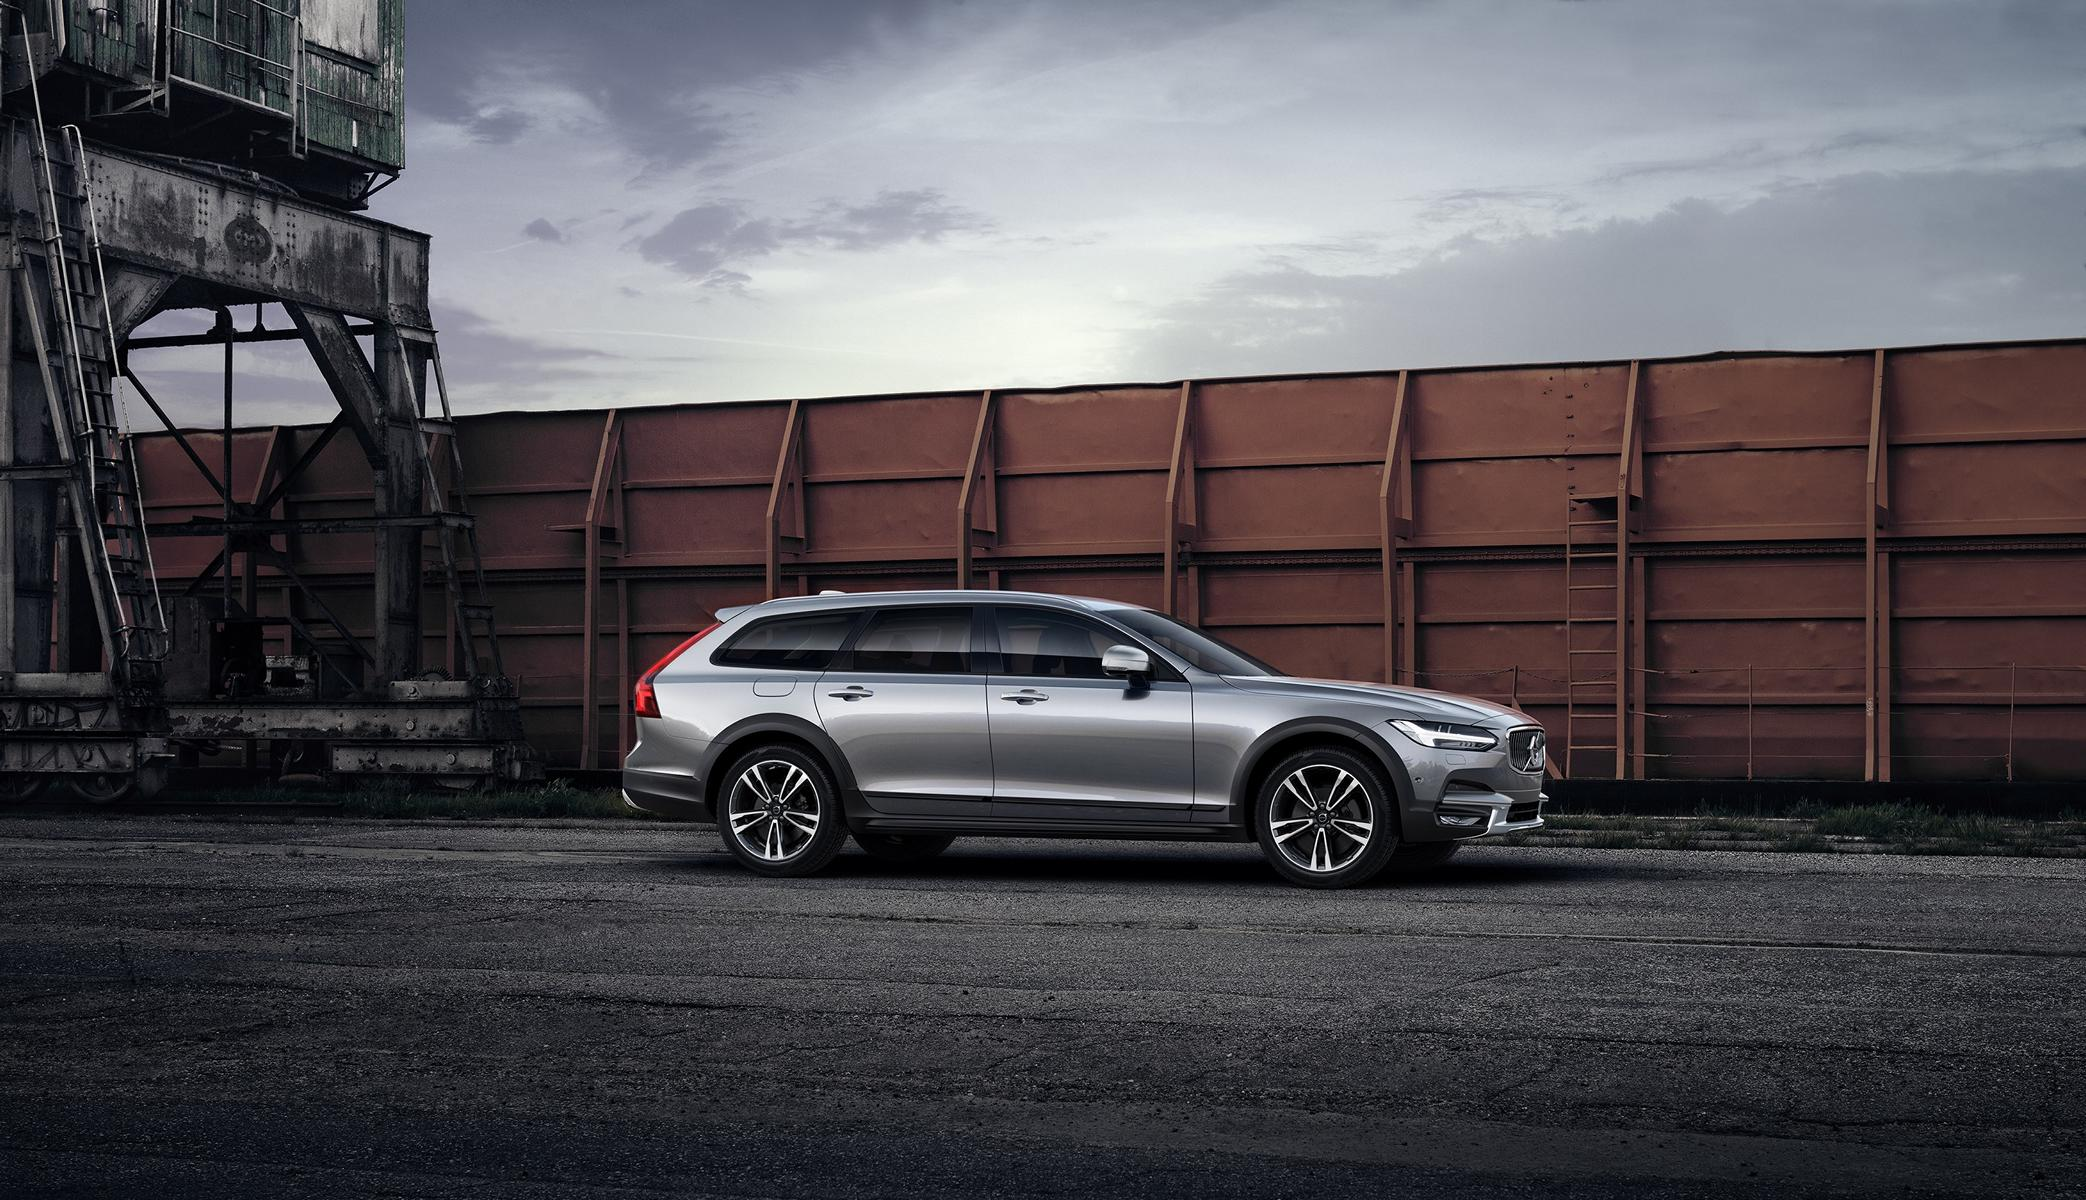 K1600 201445 Volvo V90 Cross Country mit Polestar Performance Optimierung